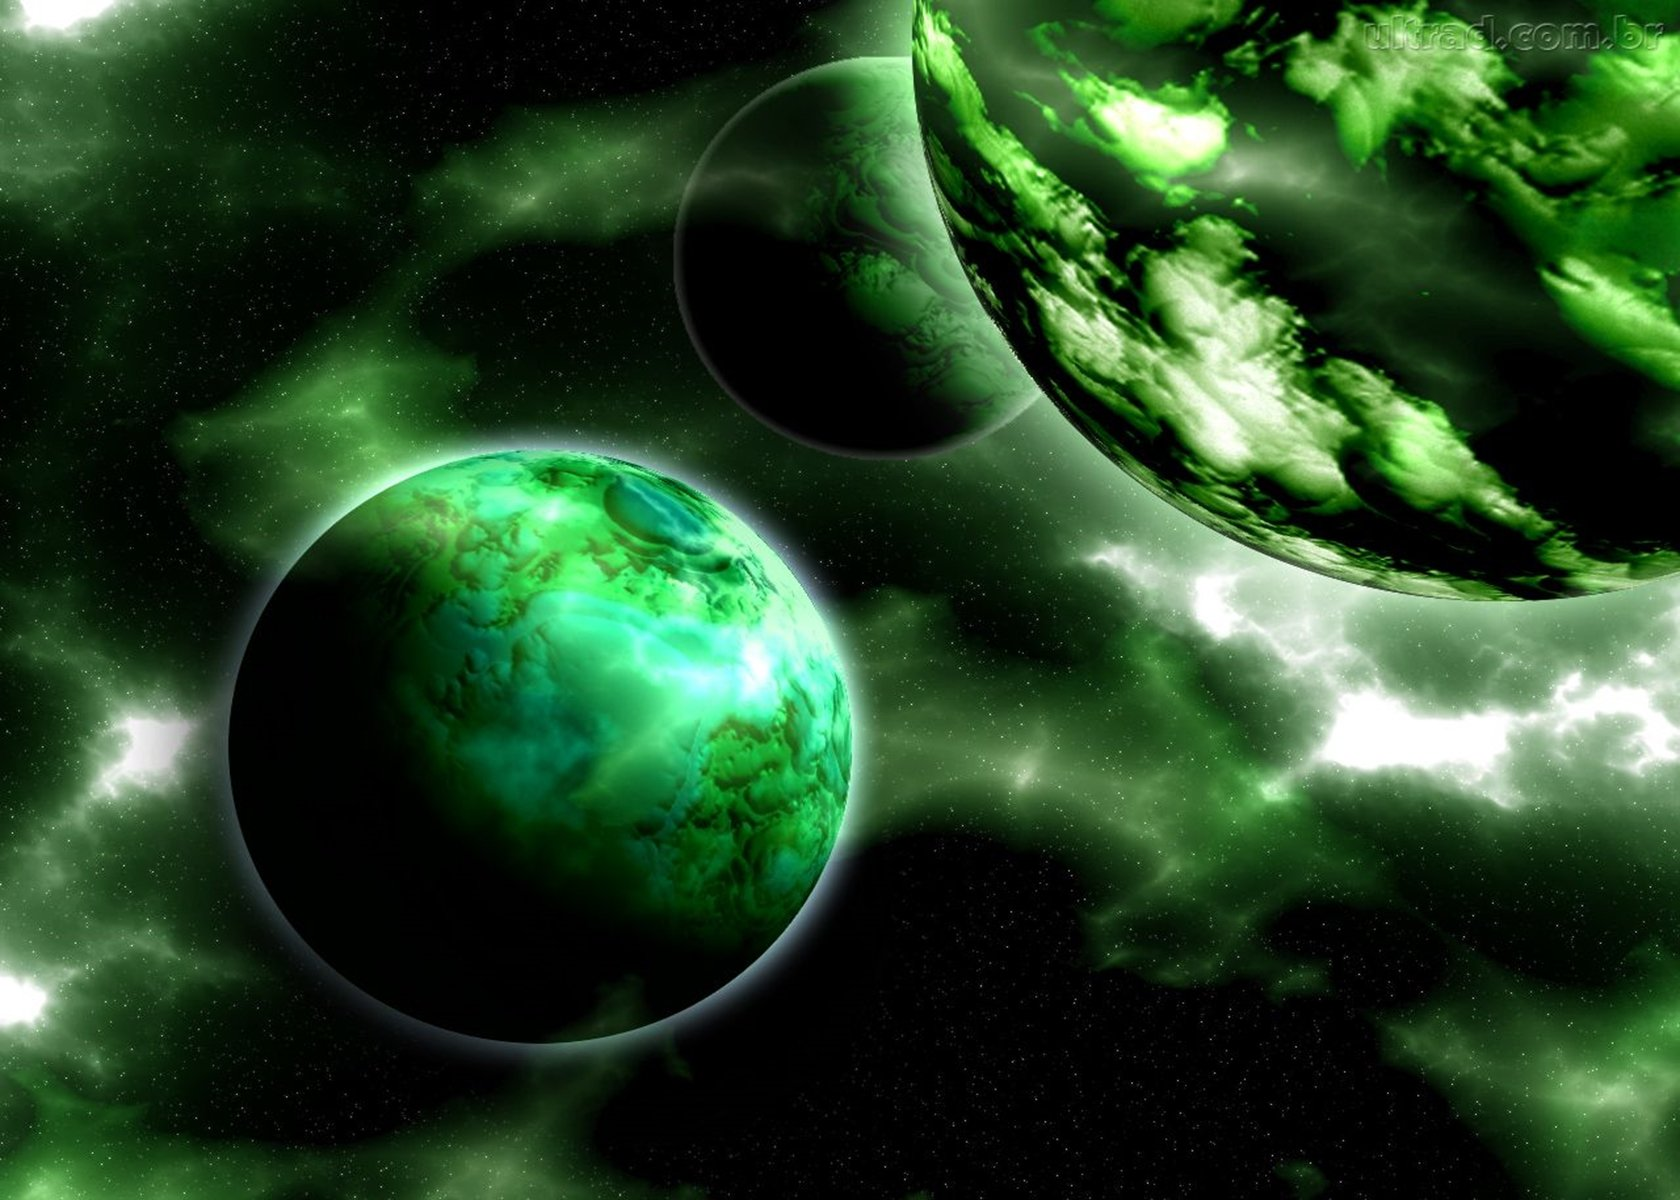 astronomy blue and green backgrounds - photo #40